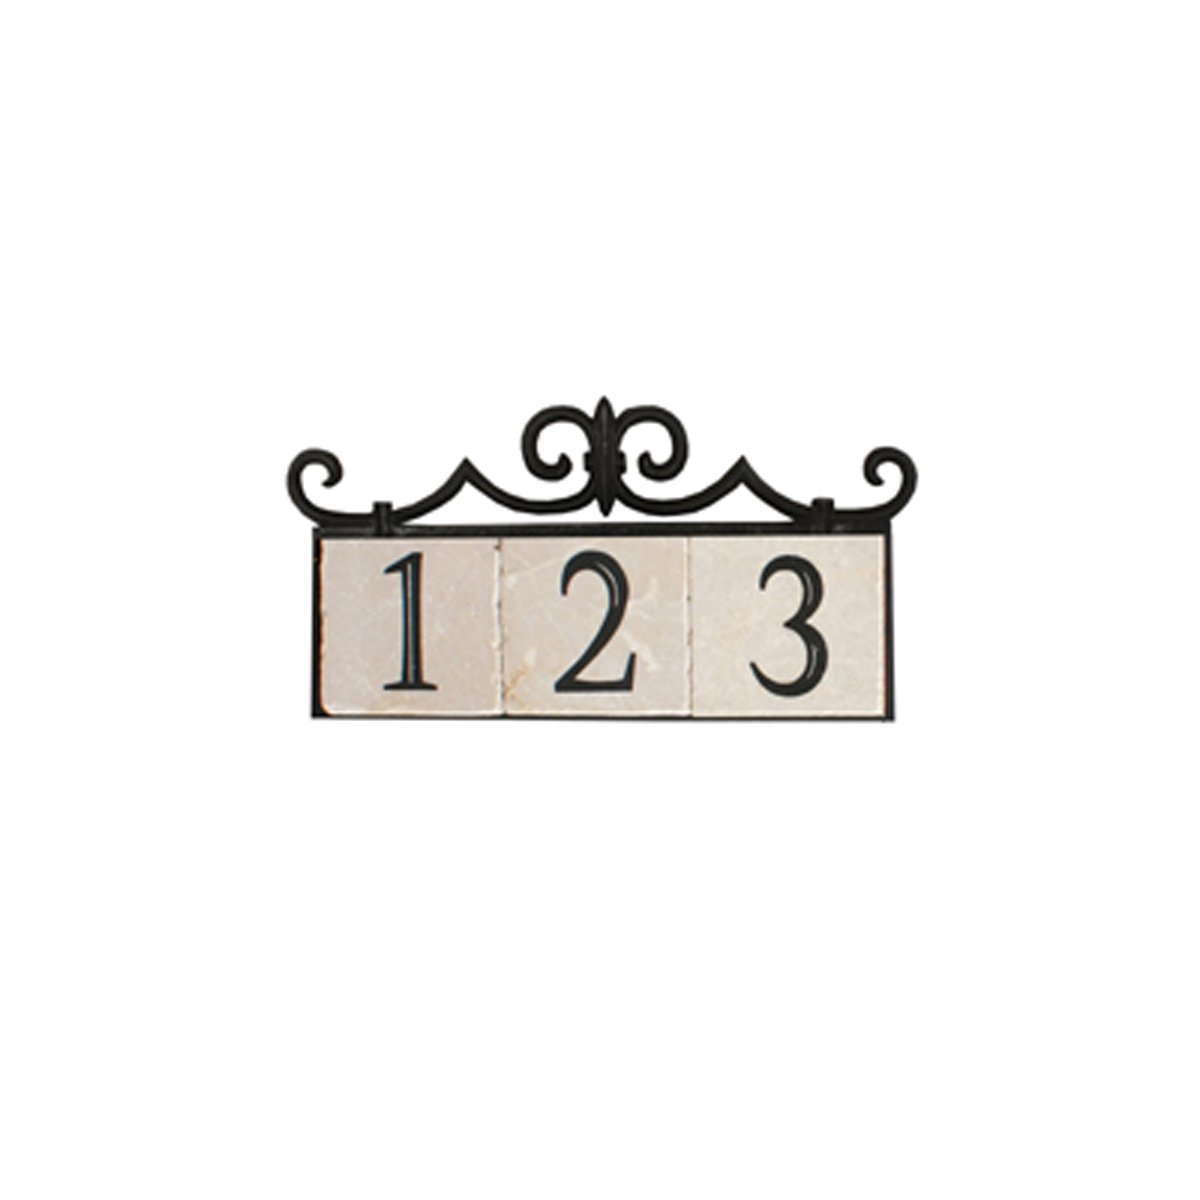 NACH KA House Address Sign/Plaque - Colonial, 3 Numbers, Iron, 14 x 8 x 1''